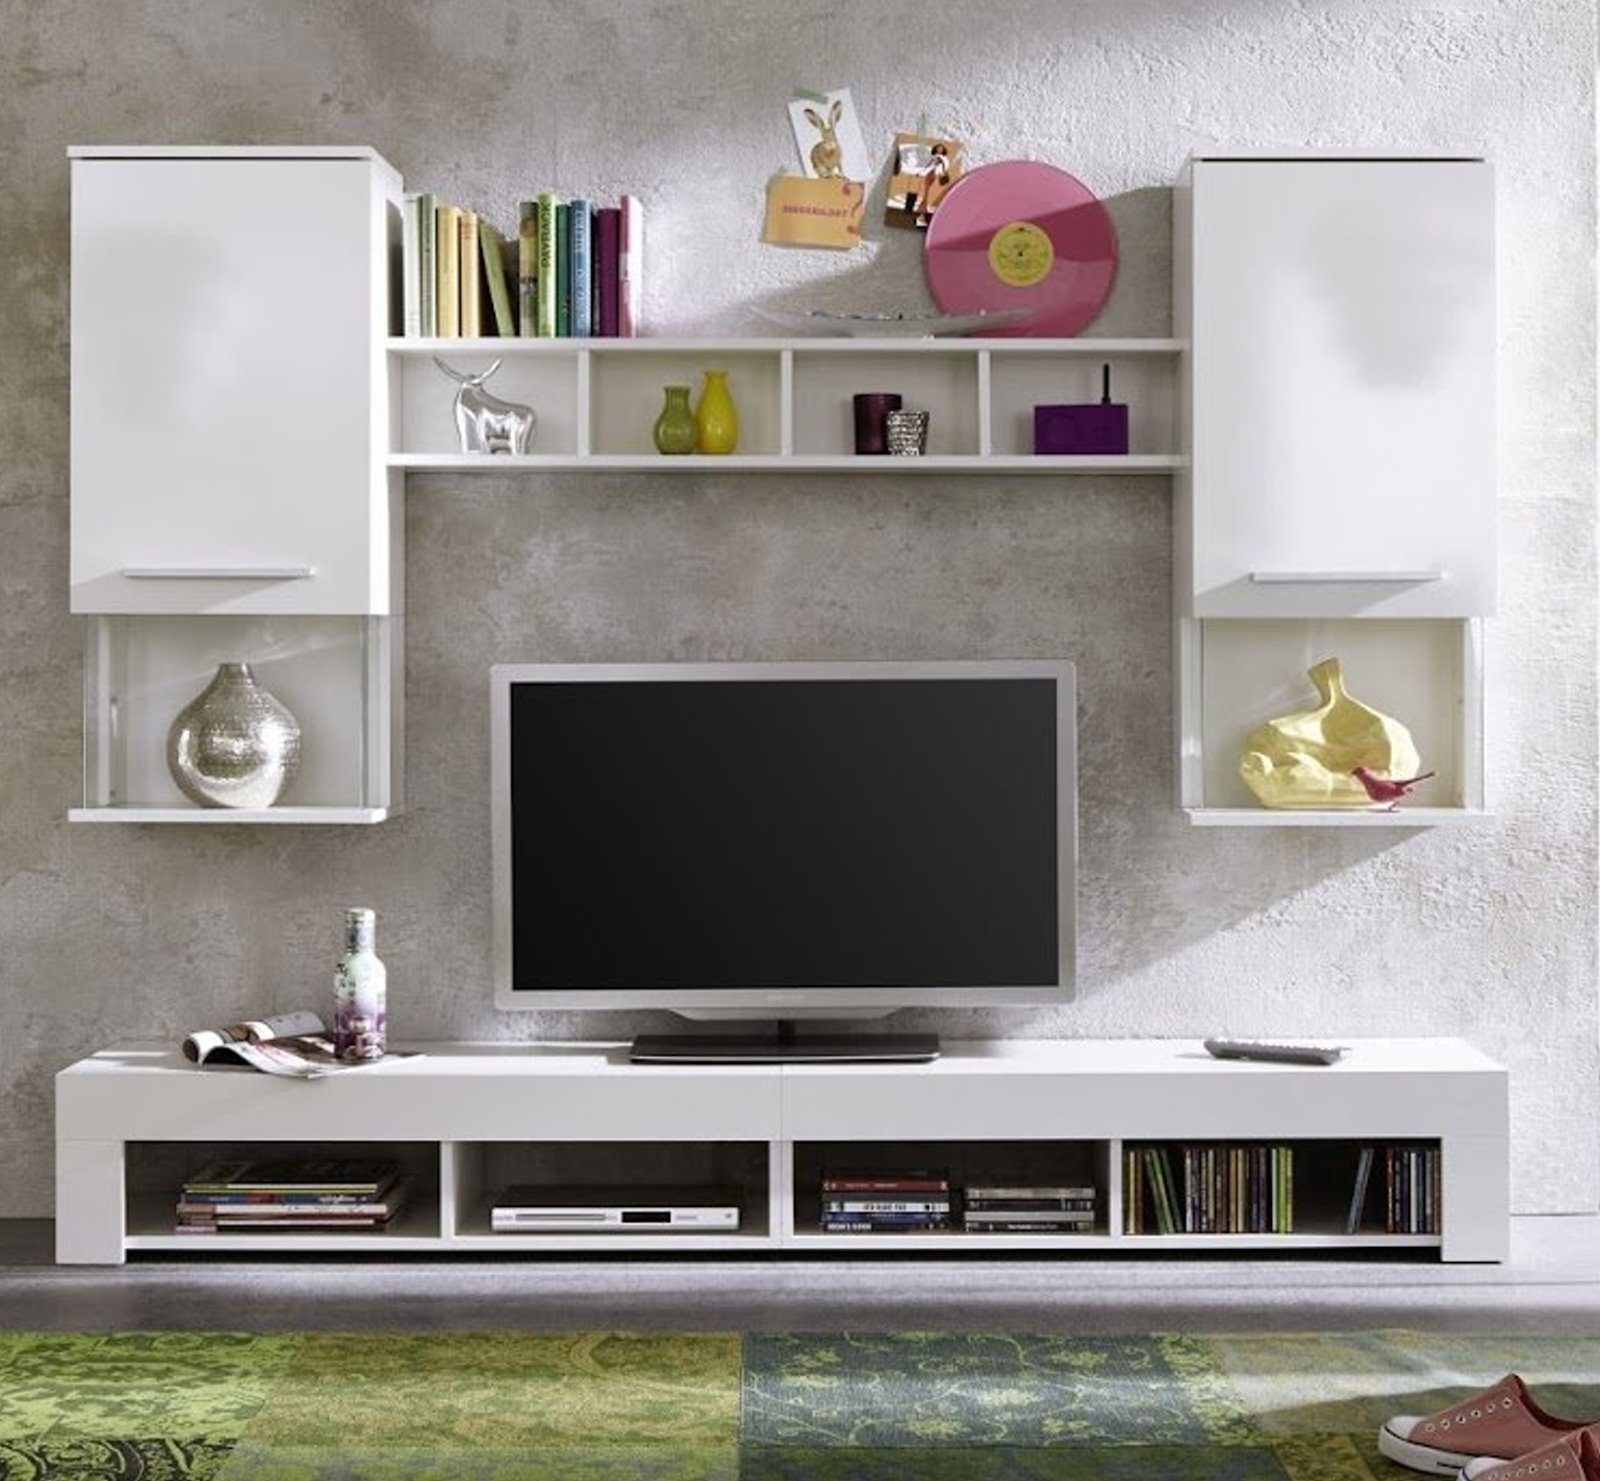 wohnwand anbauwand wohnzimmer tv schrank schrankwand wohnwand hochglanz wei m bel wohnen. Black Bedroom Furniture Sets. Home Design Ideas